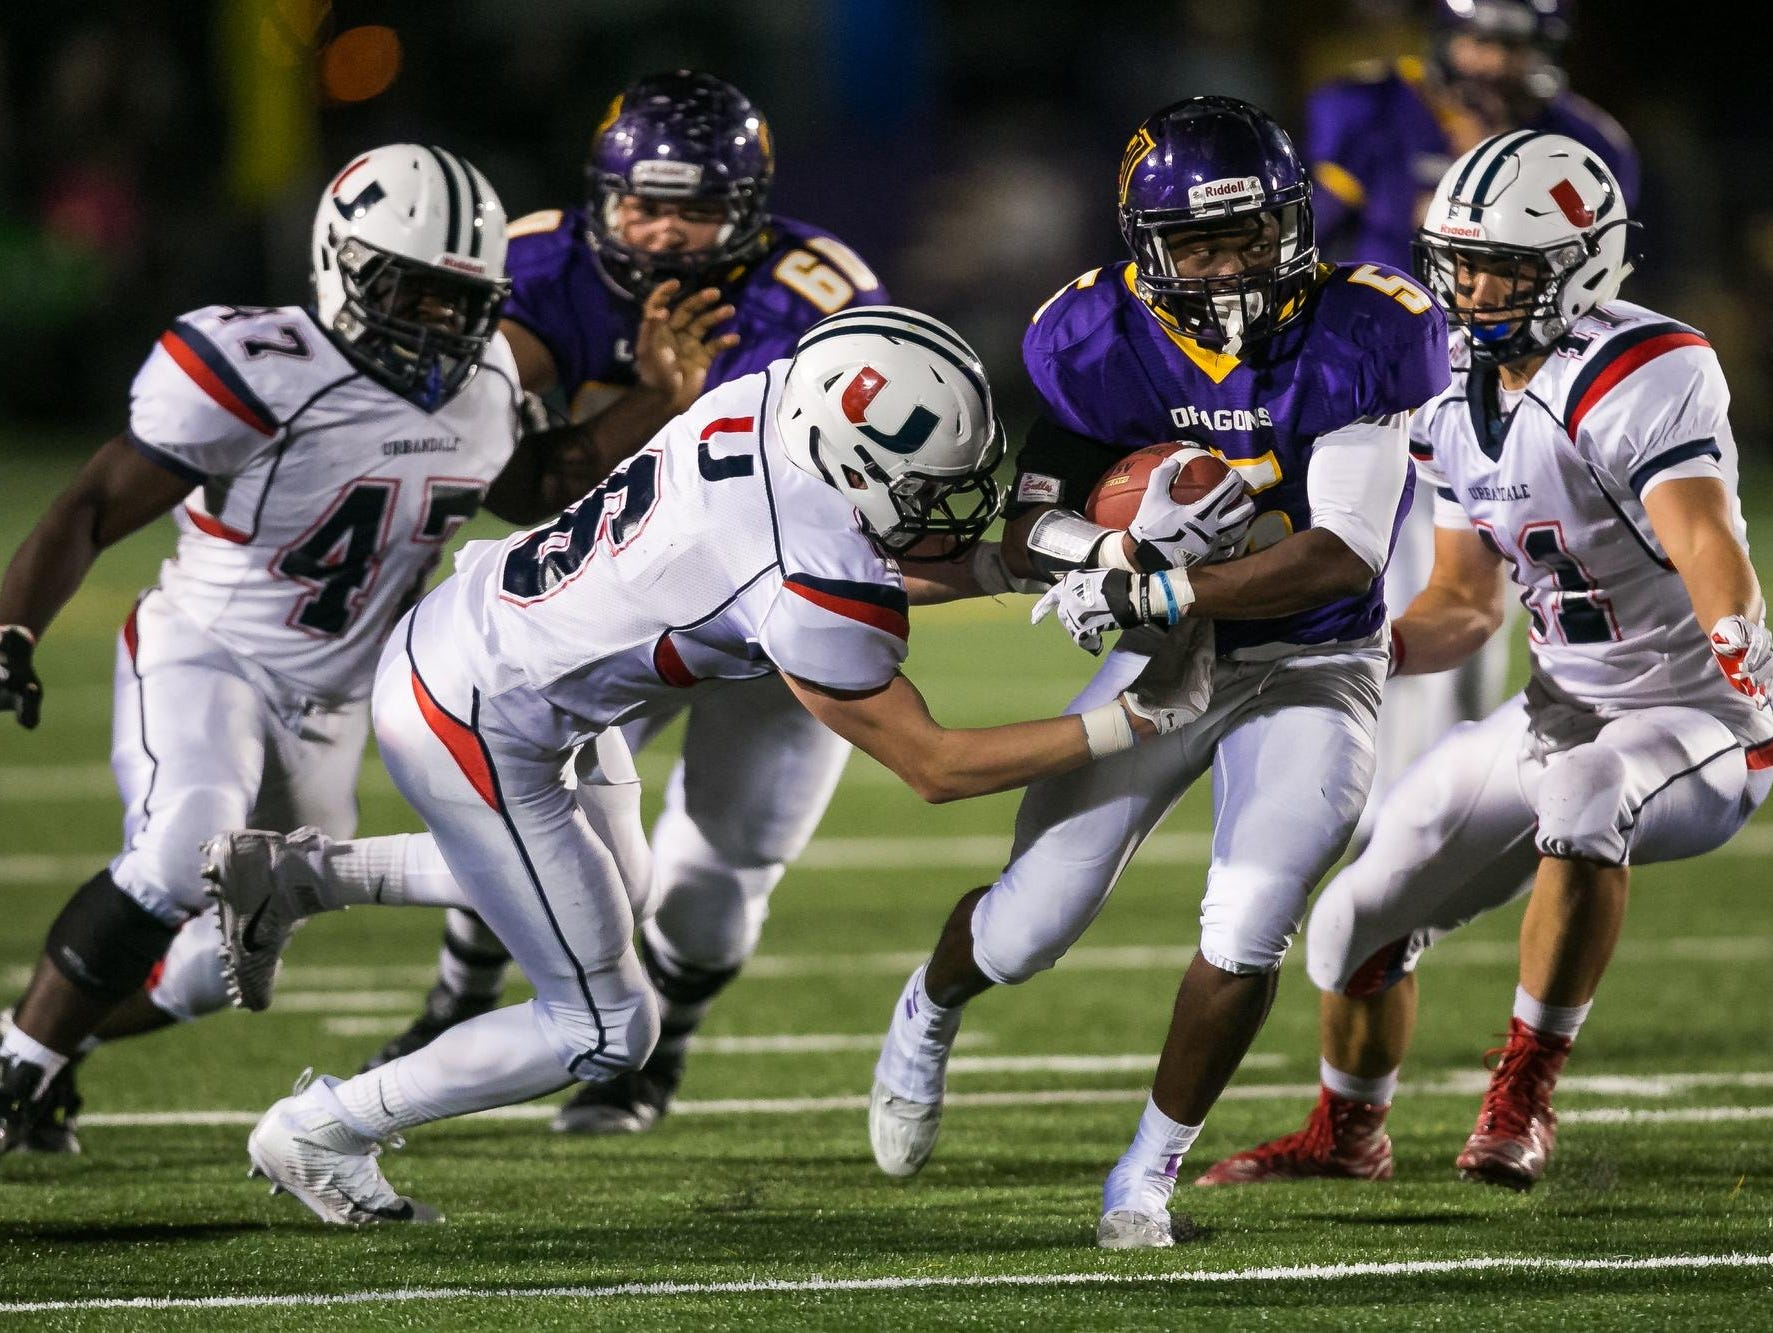 Johnston's T-Boy White tries to break a tackle during their Friday's home game against Urbandale. White rushed for 100 yards on 15 carries, scoring two touchdowns in a 24-17 Dragons win. Johnston is now 3-0, with all victories coming by a touchdown or less.